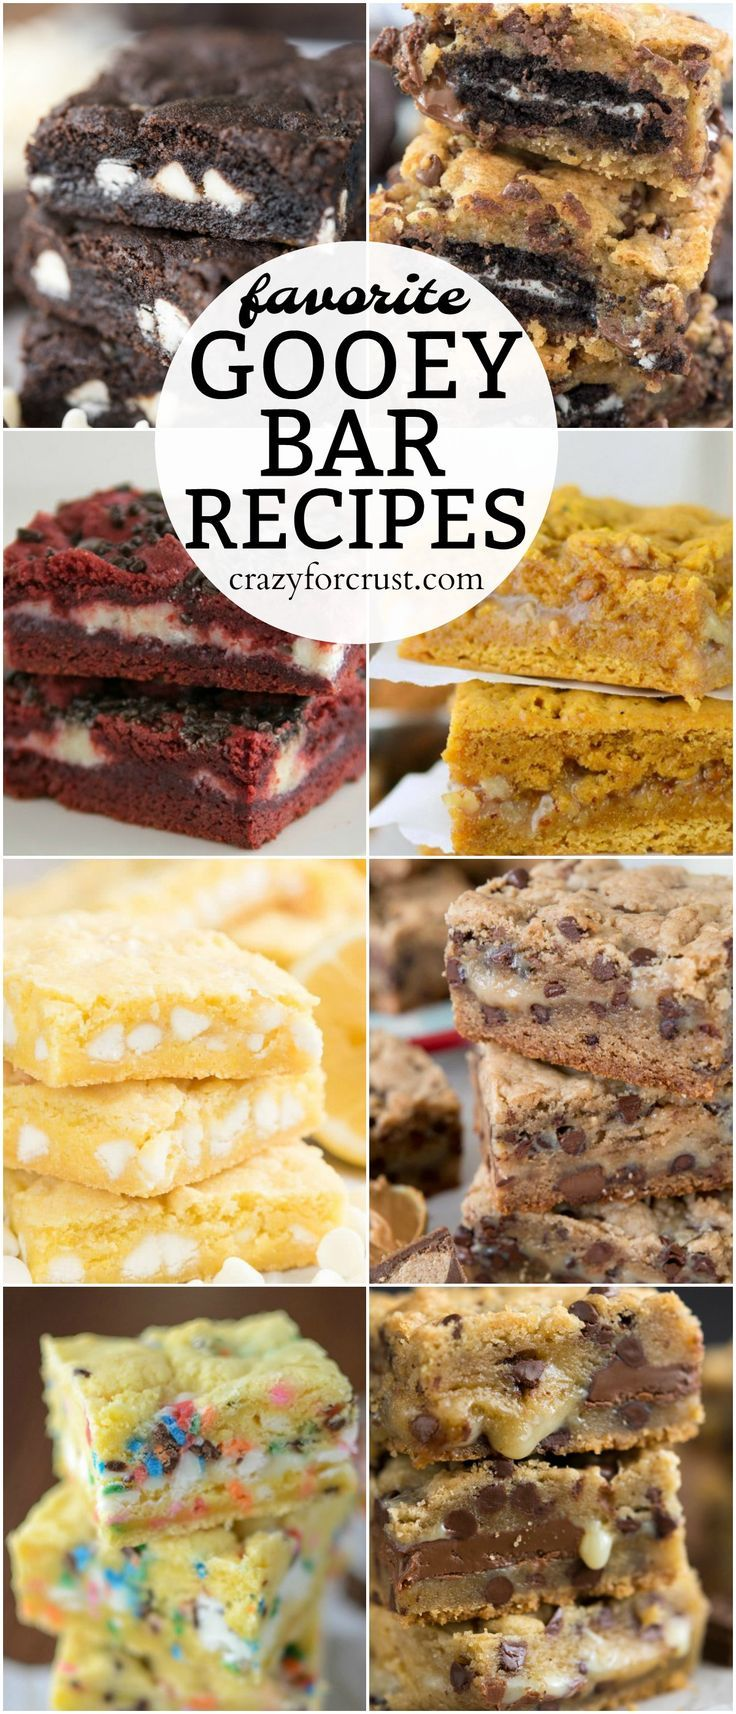 These are my favorite Gooey Bar Recipes and perfect for any occasion. Chocolate, lemon, peanut butter - everyone loves these recipes!